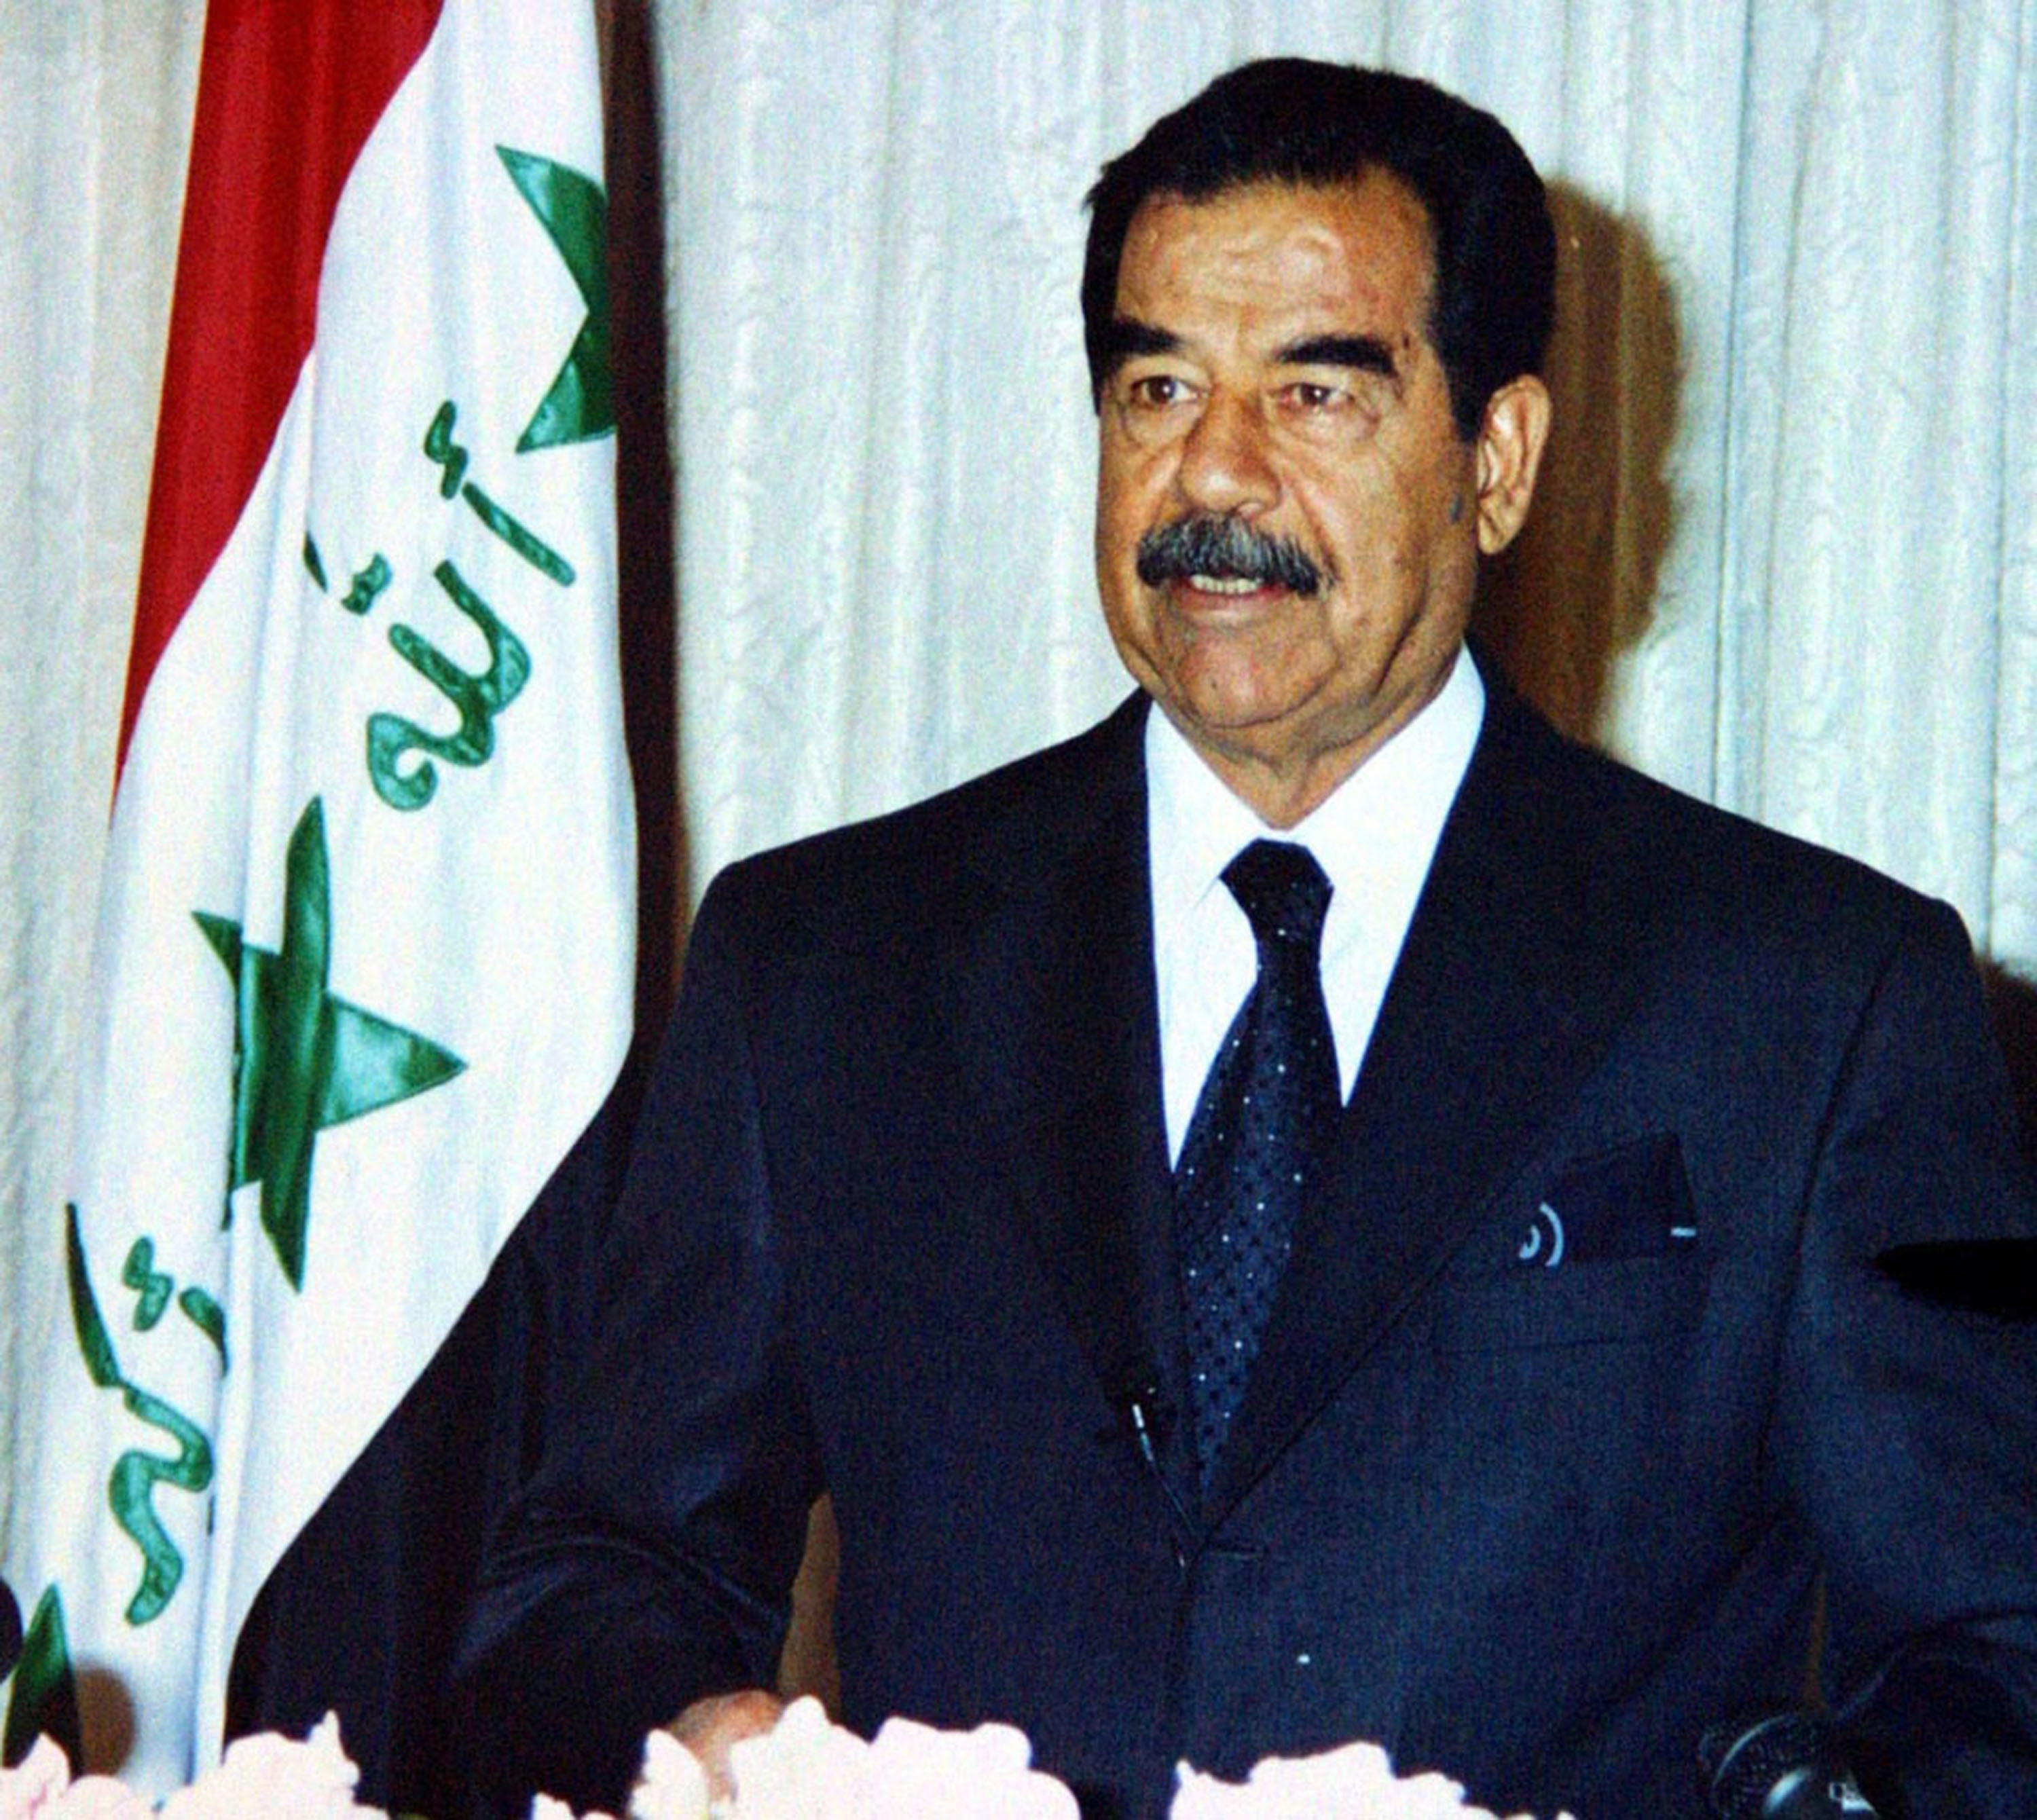 Saddam Hussein is said to have used lots of body doubles.